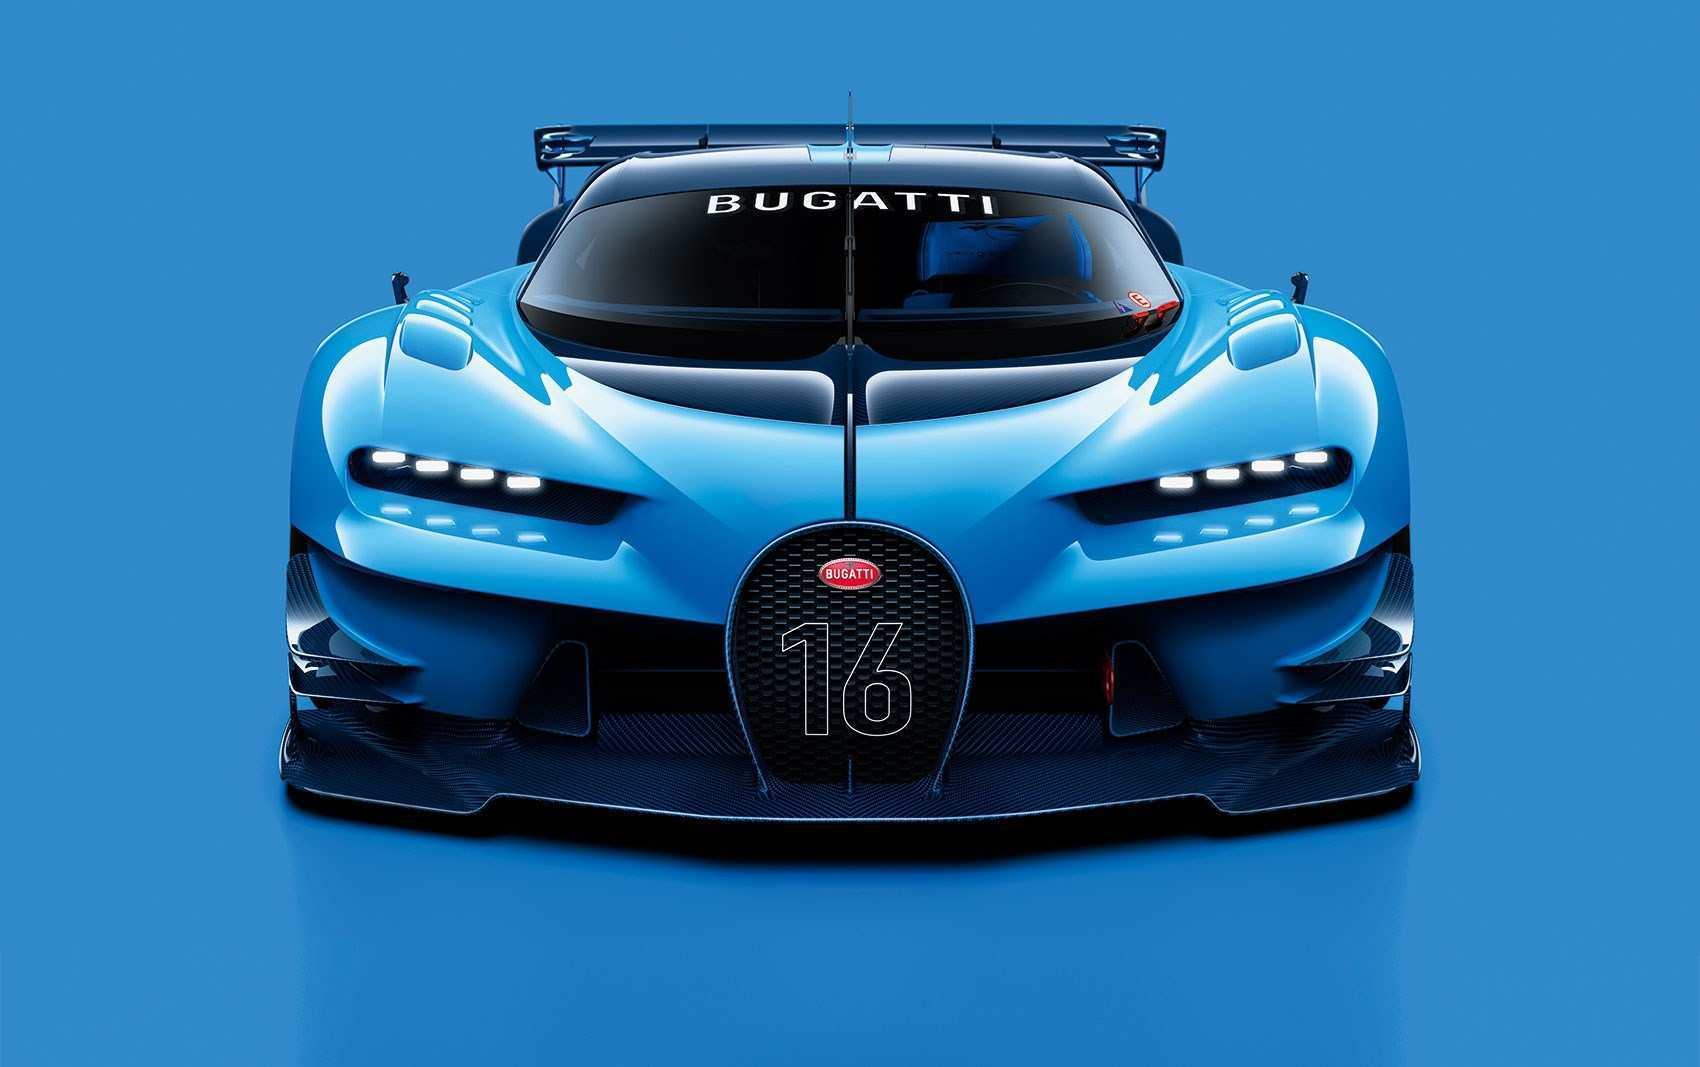 12 All New 2020 Bugatti Veyron Price Configurations with 2020 Bugatti Veyron Price